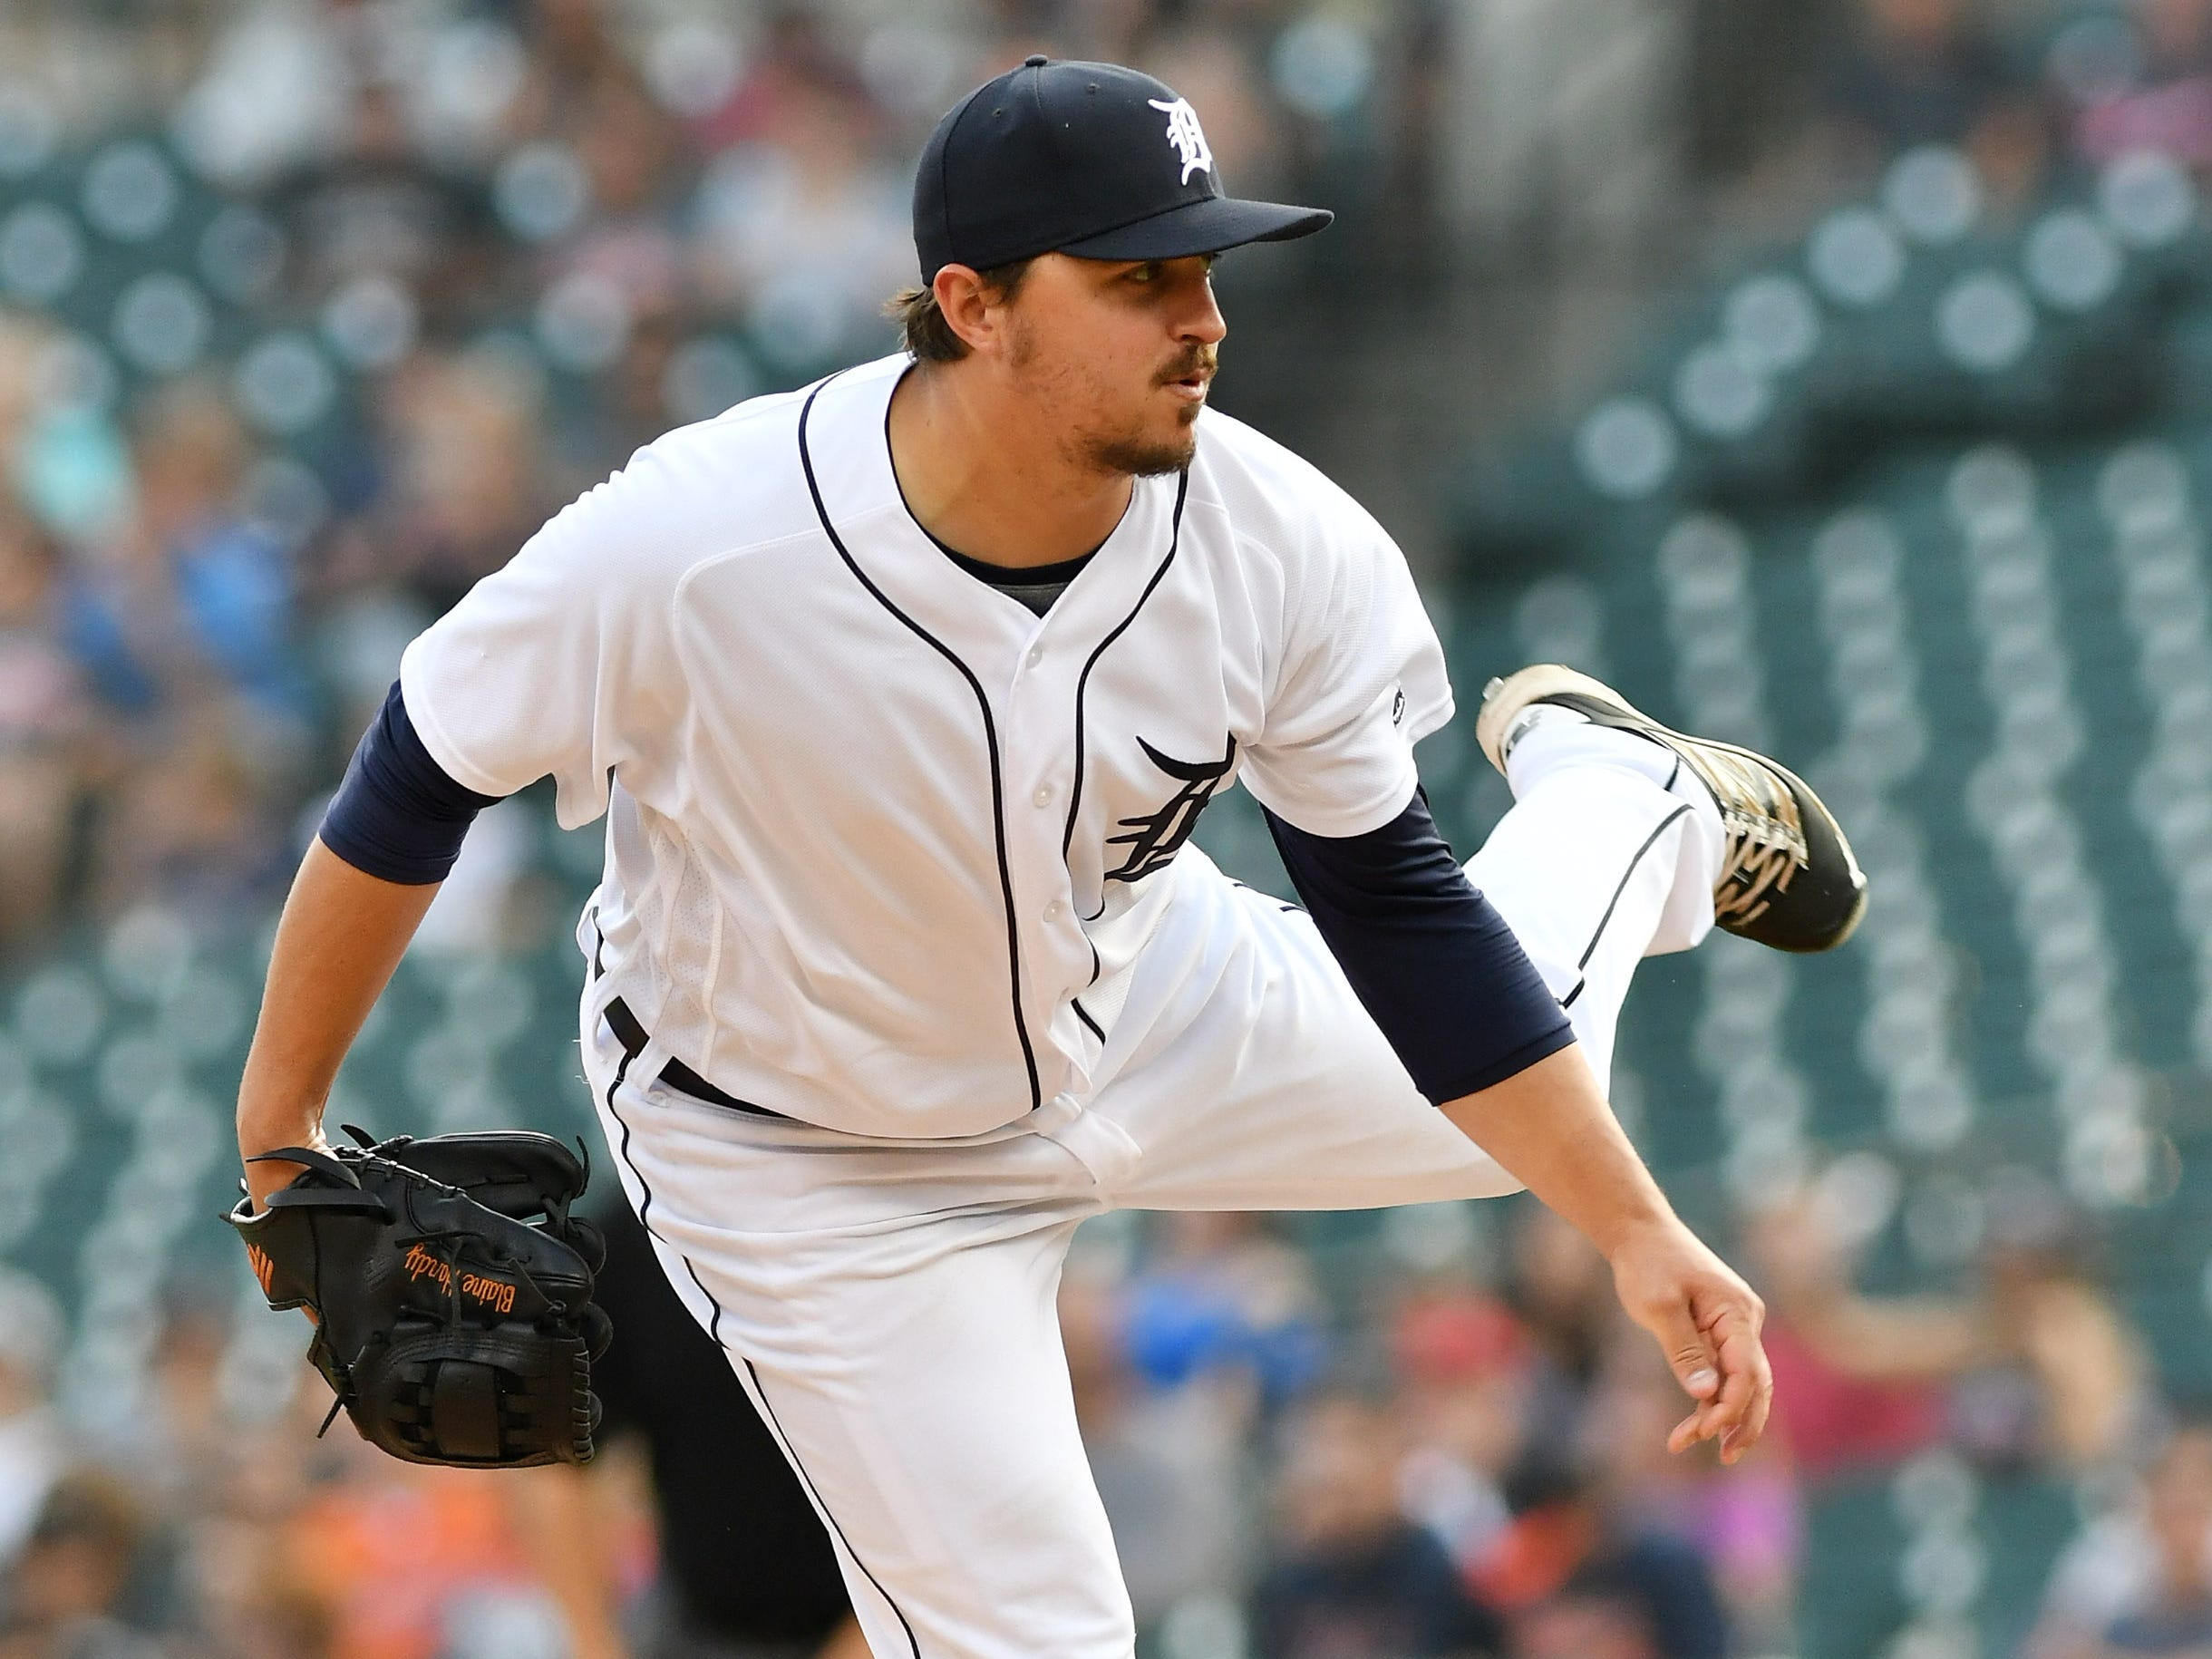 Blaine Hardy (4-5, 3.56 1.17): He's made himself a valuable versatile asset and it's hard to imagine the Tigers won't sign him back for 2019. After working his way off the scrap heap (he went unclaimed after being waived), he made 13 mostly solid starts. Then he went uncomplainingly back to the bullpen and allowed just two runs in 18.1 innings with 19 strikeouts. He can be effective as a starter, long reliever and situational lefty. The concern continues to be his elbow, which put him on the shelf toward the end of the season.   Mid-term grade: B Second-half grade: B Final grade: B